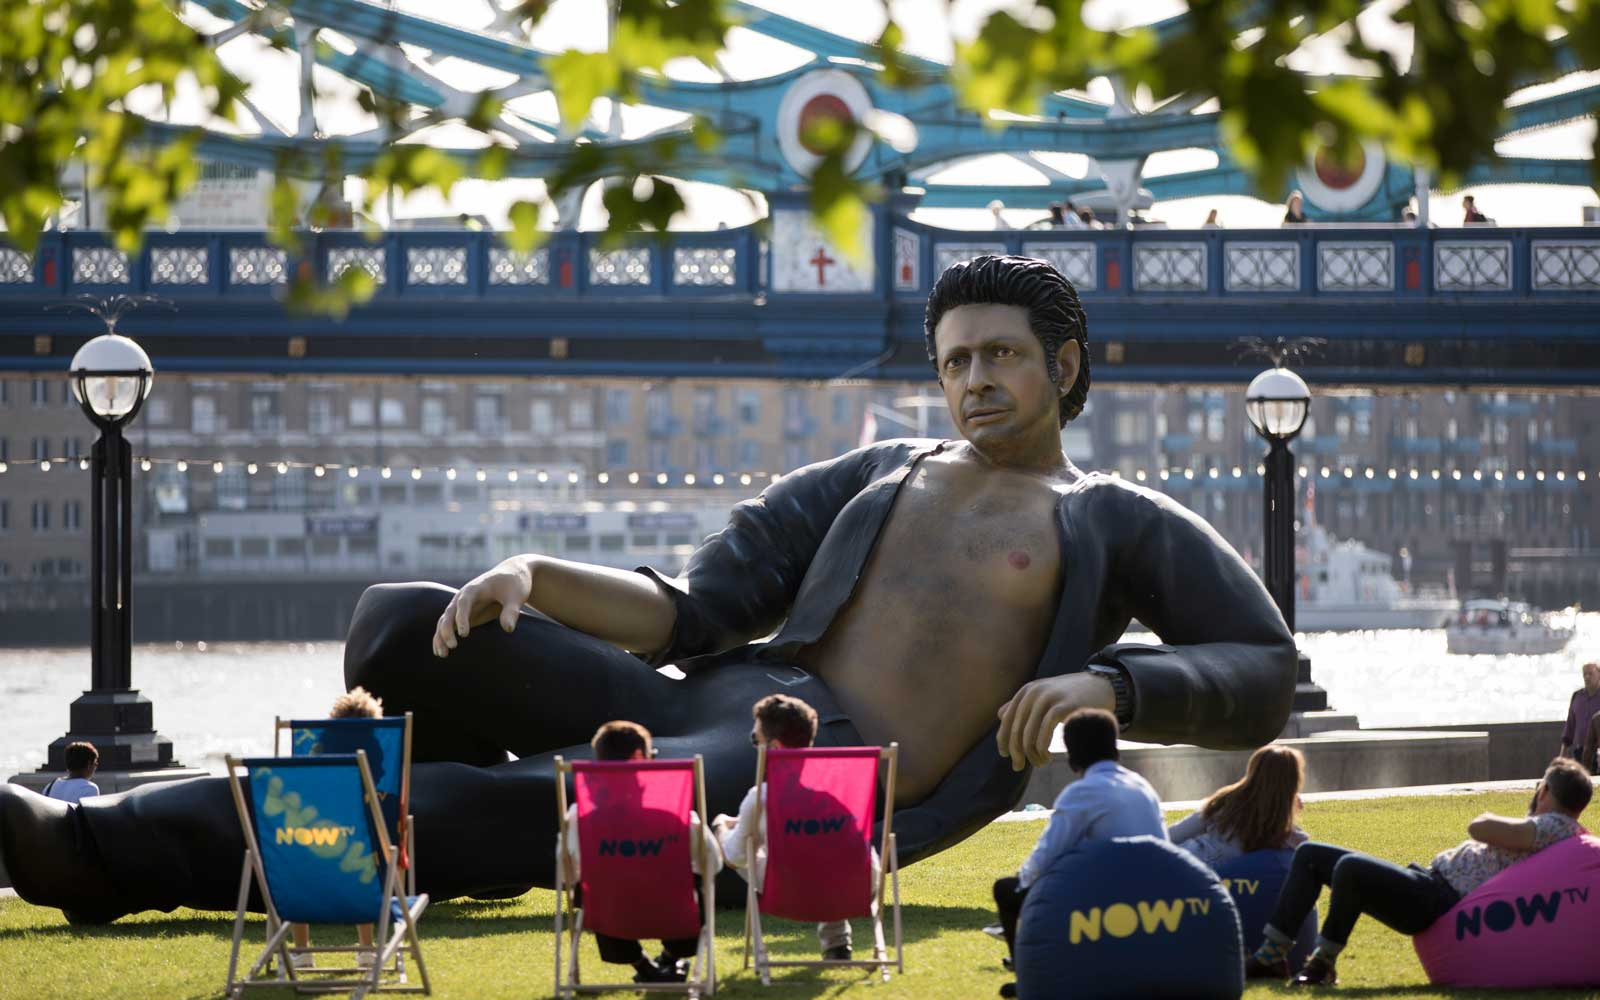 Celebrating 25 years since Jurassic Park first premiered in the UK, streaming service NOW TV unveil a statue of Jeff Goldblum semi-naked torso at Potters Field on July 18, 2018 in London, England